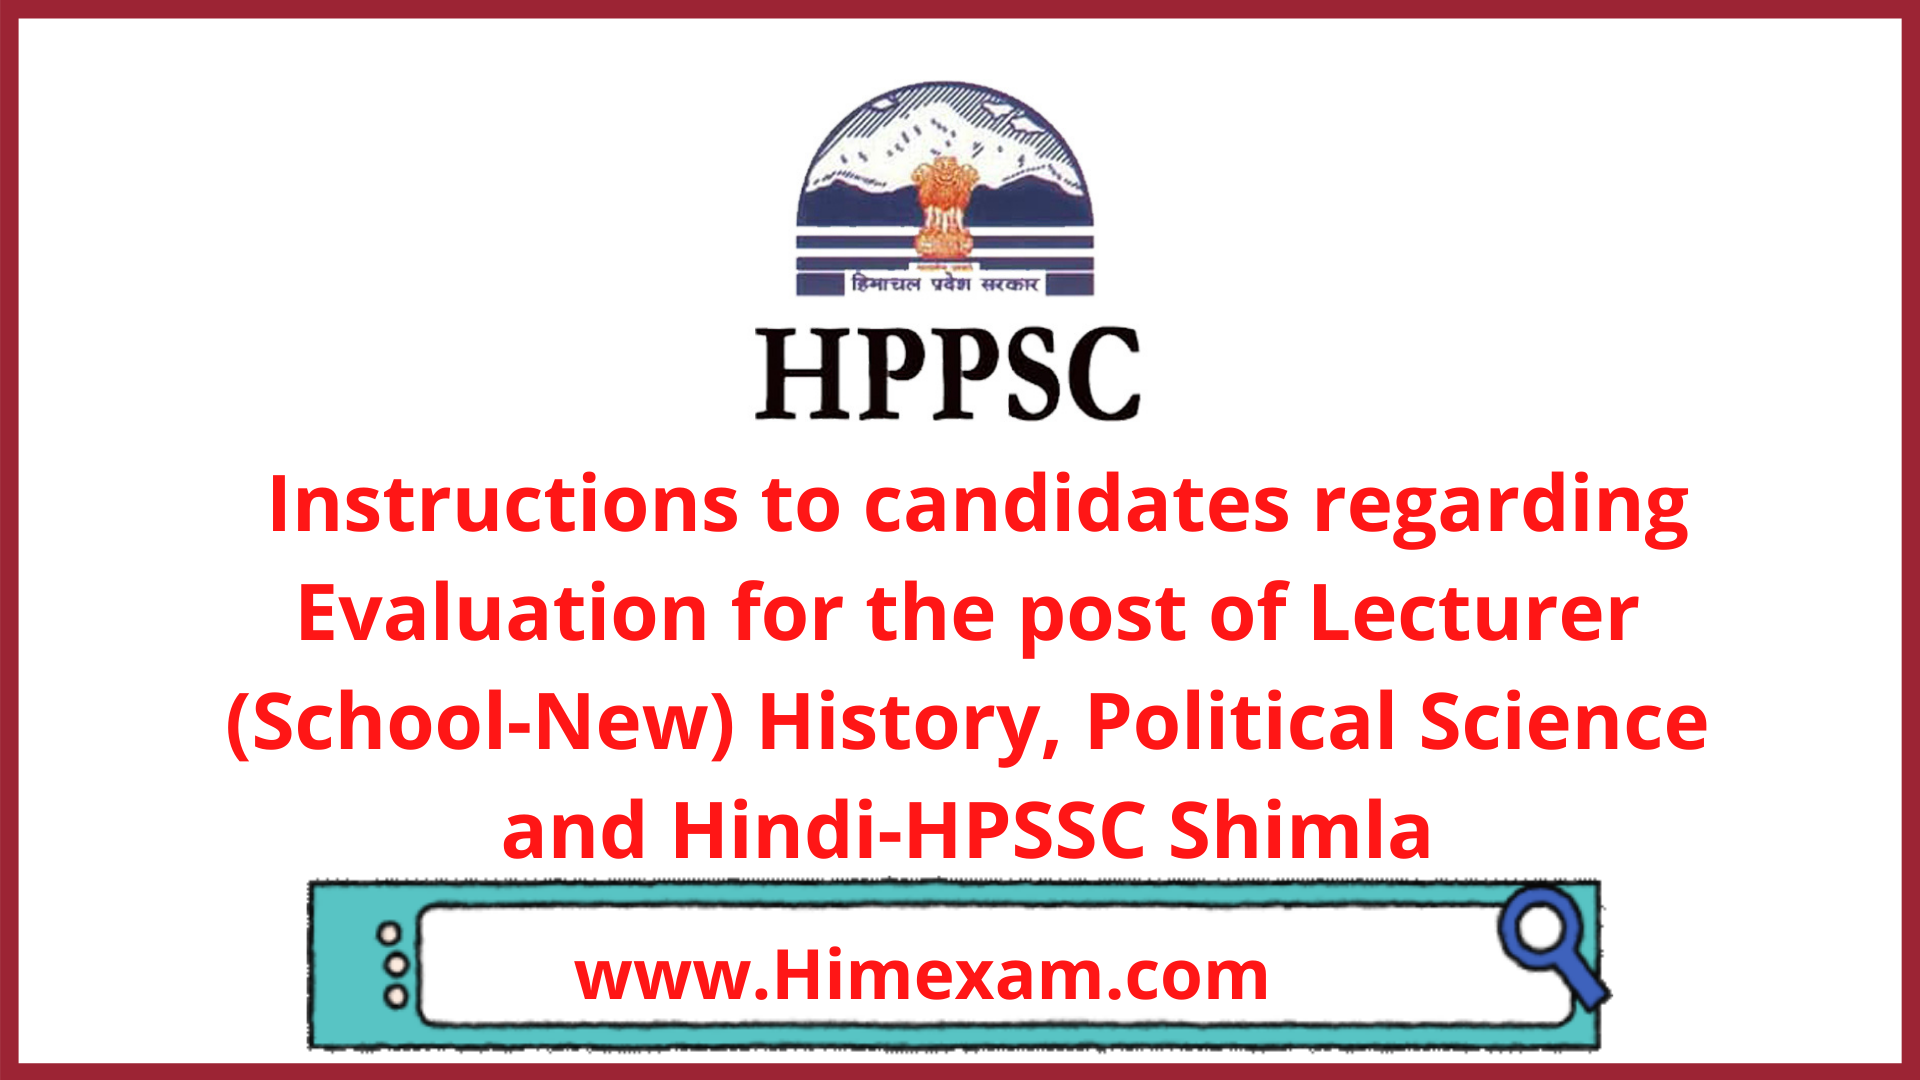 Instructions to candidates regarding Evaluation for the post of Lecturer (School-New) History, Political Science and Hindi-HPSSC Shimla